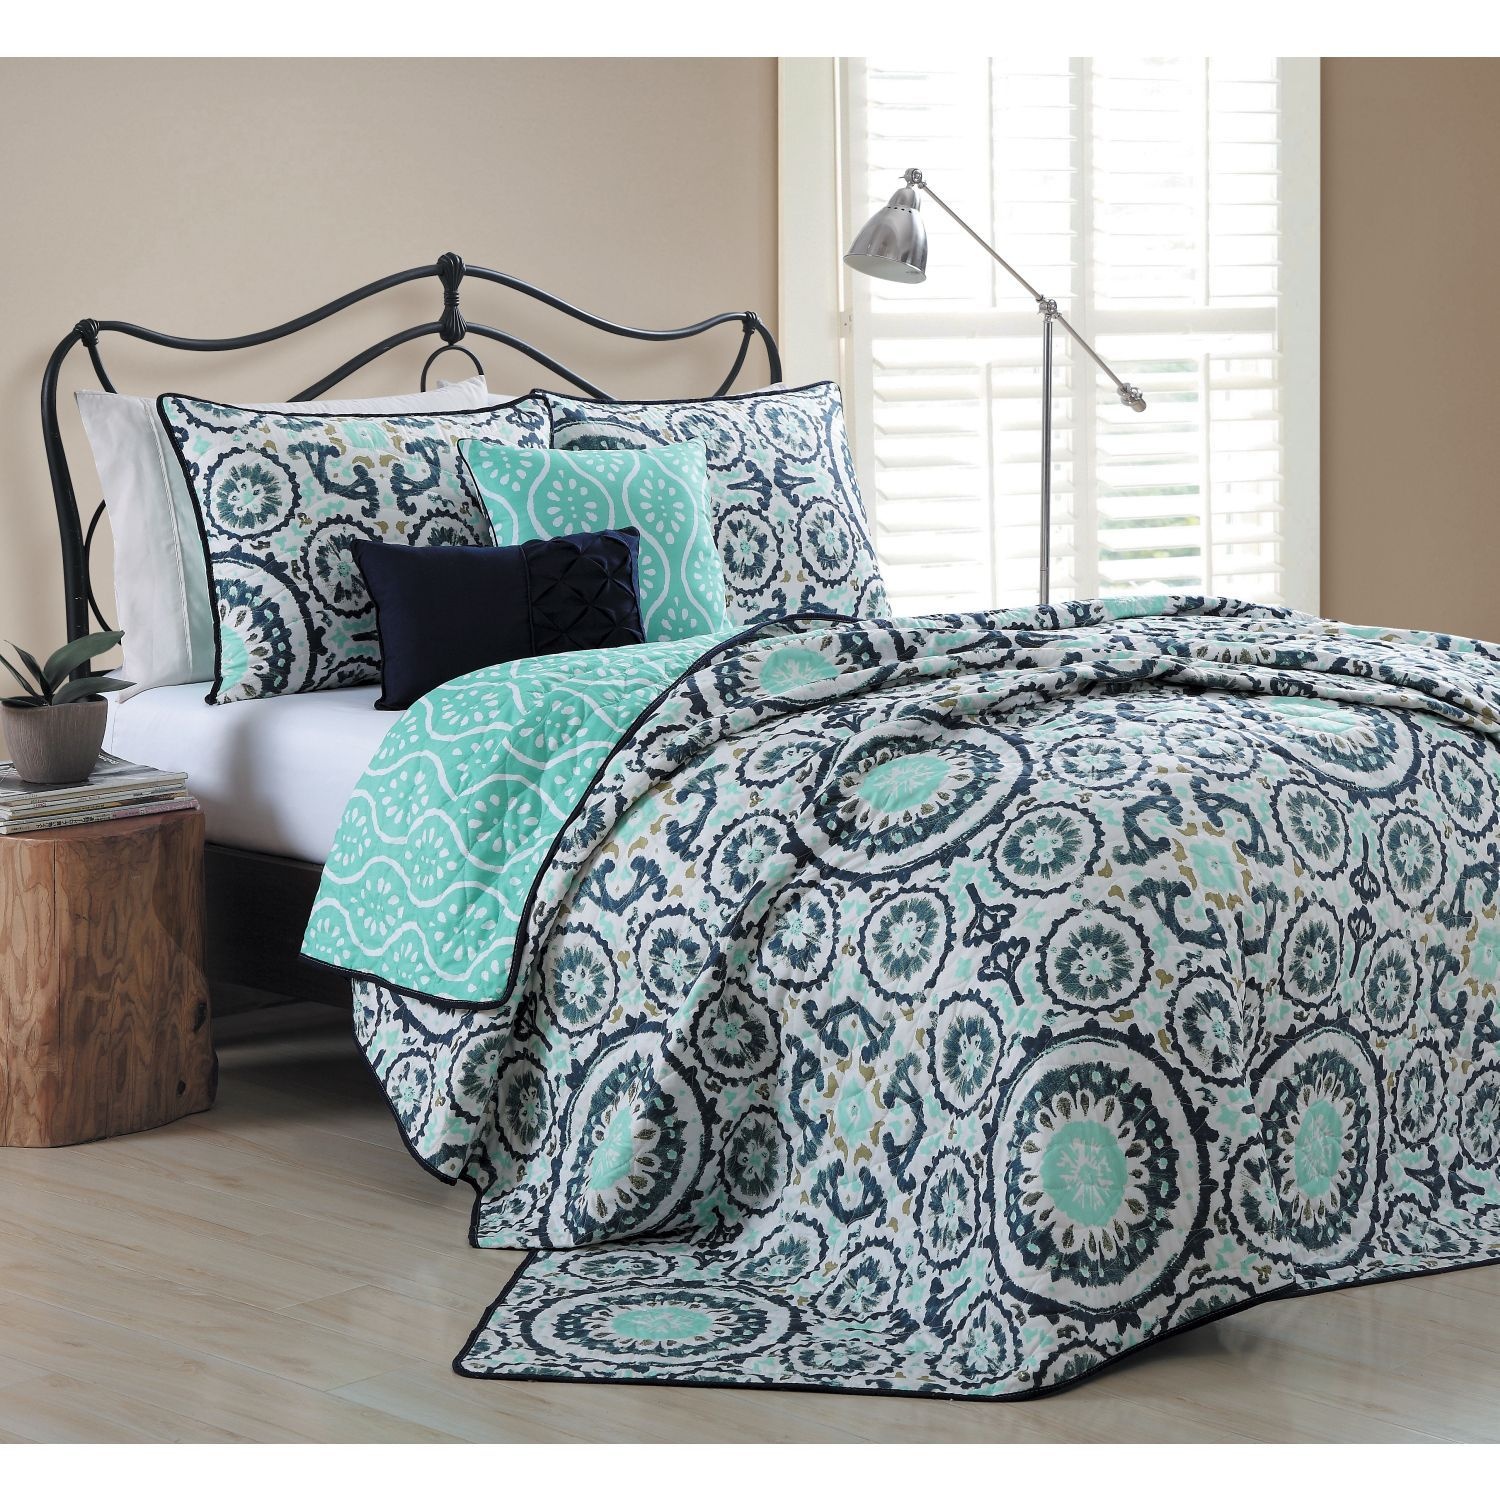 avondale manor leona 5piece quilt set by avondale manor queen beddingblue